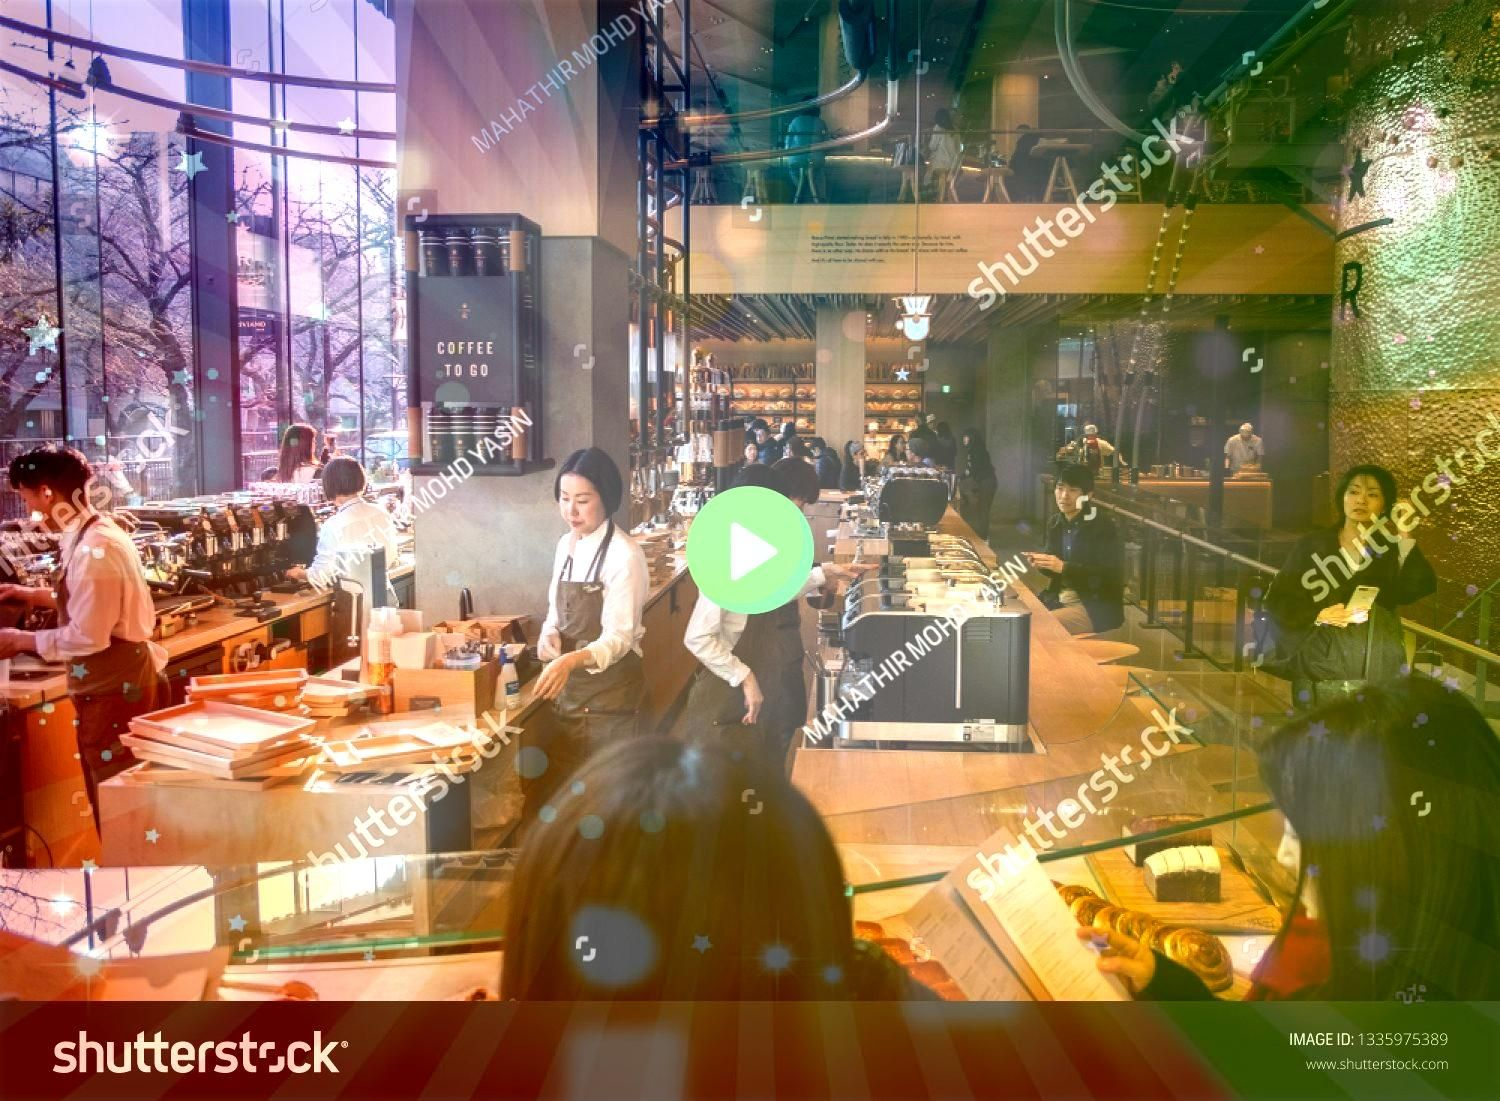 JAPAN  MARCH 9TH 2019 Customers at the busy Starbucks Reserve Roastery coffee house Wide angle view TOKYO JAPAN  MARCH 9TH 2019 Customers at the busy Starbucks Reserve Ro...